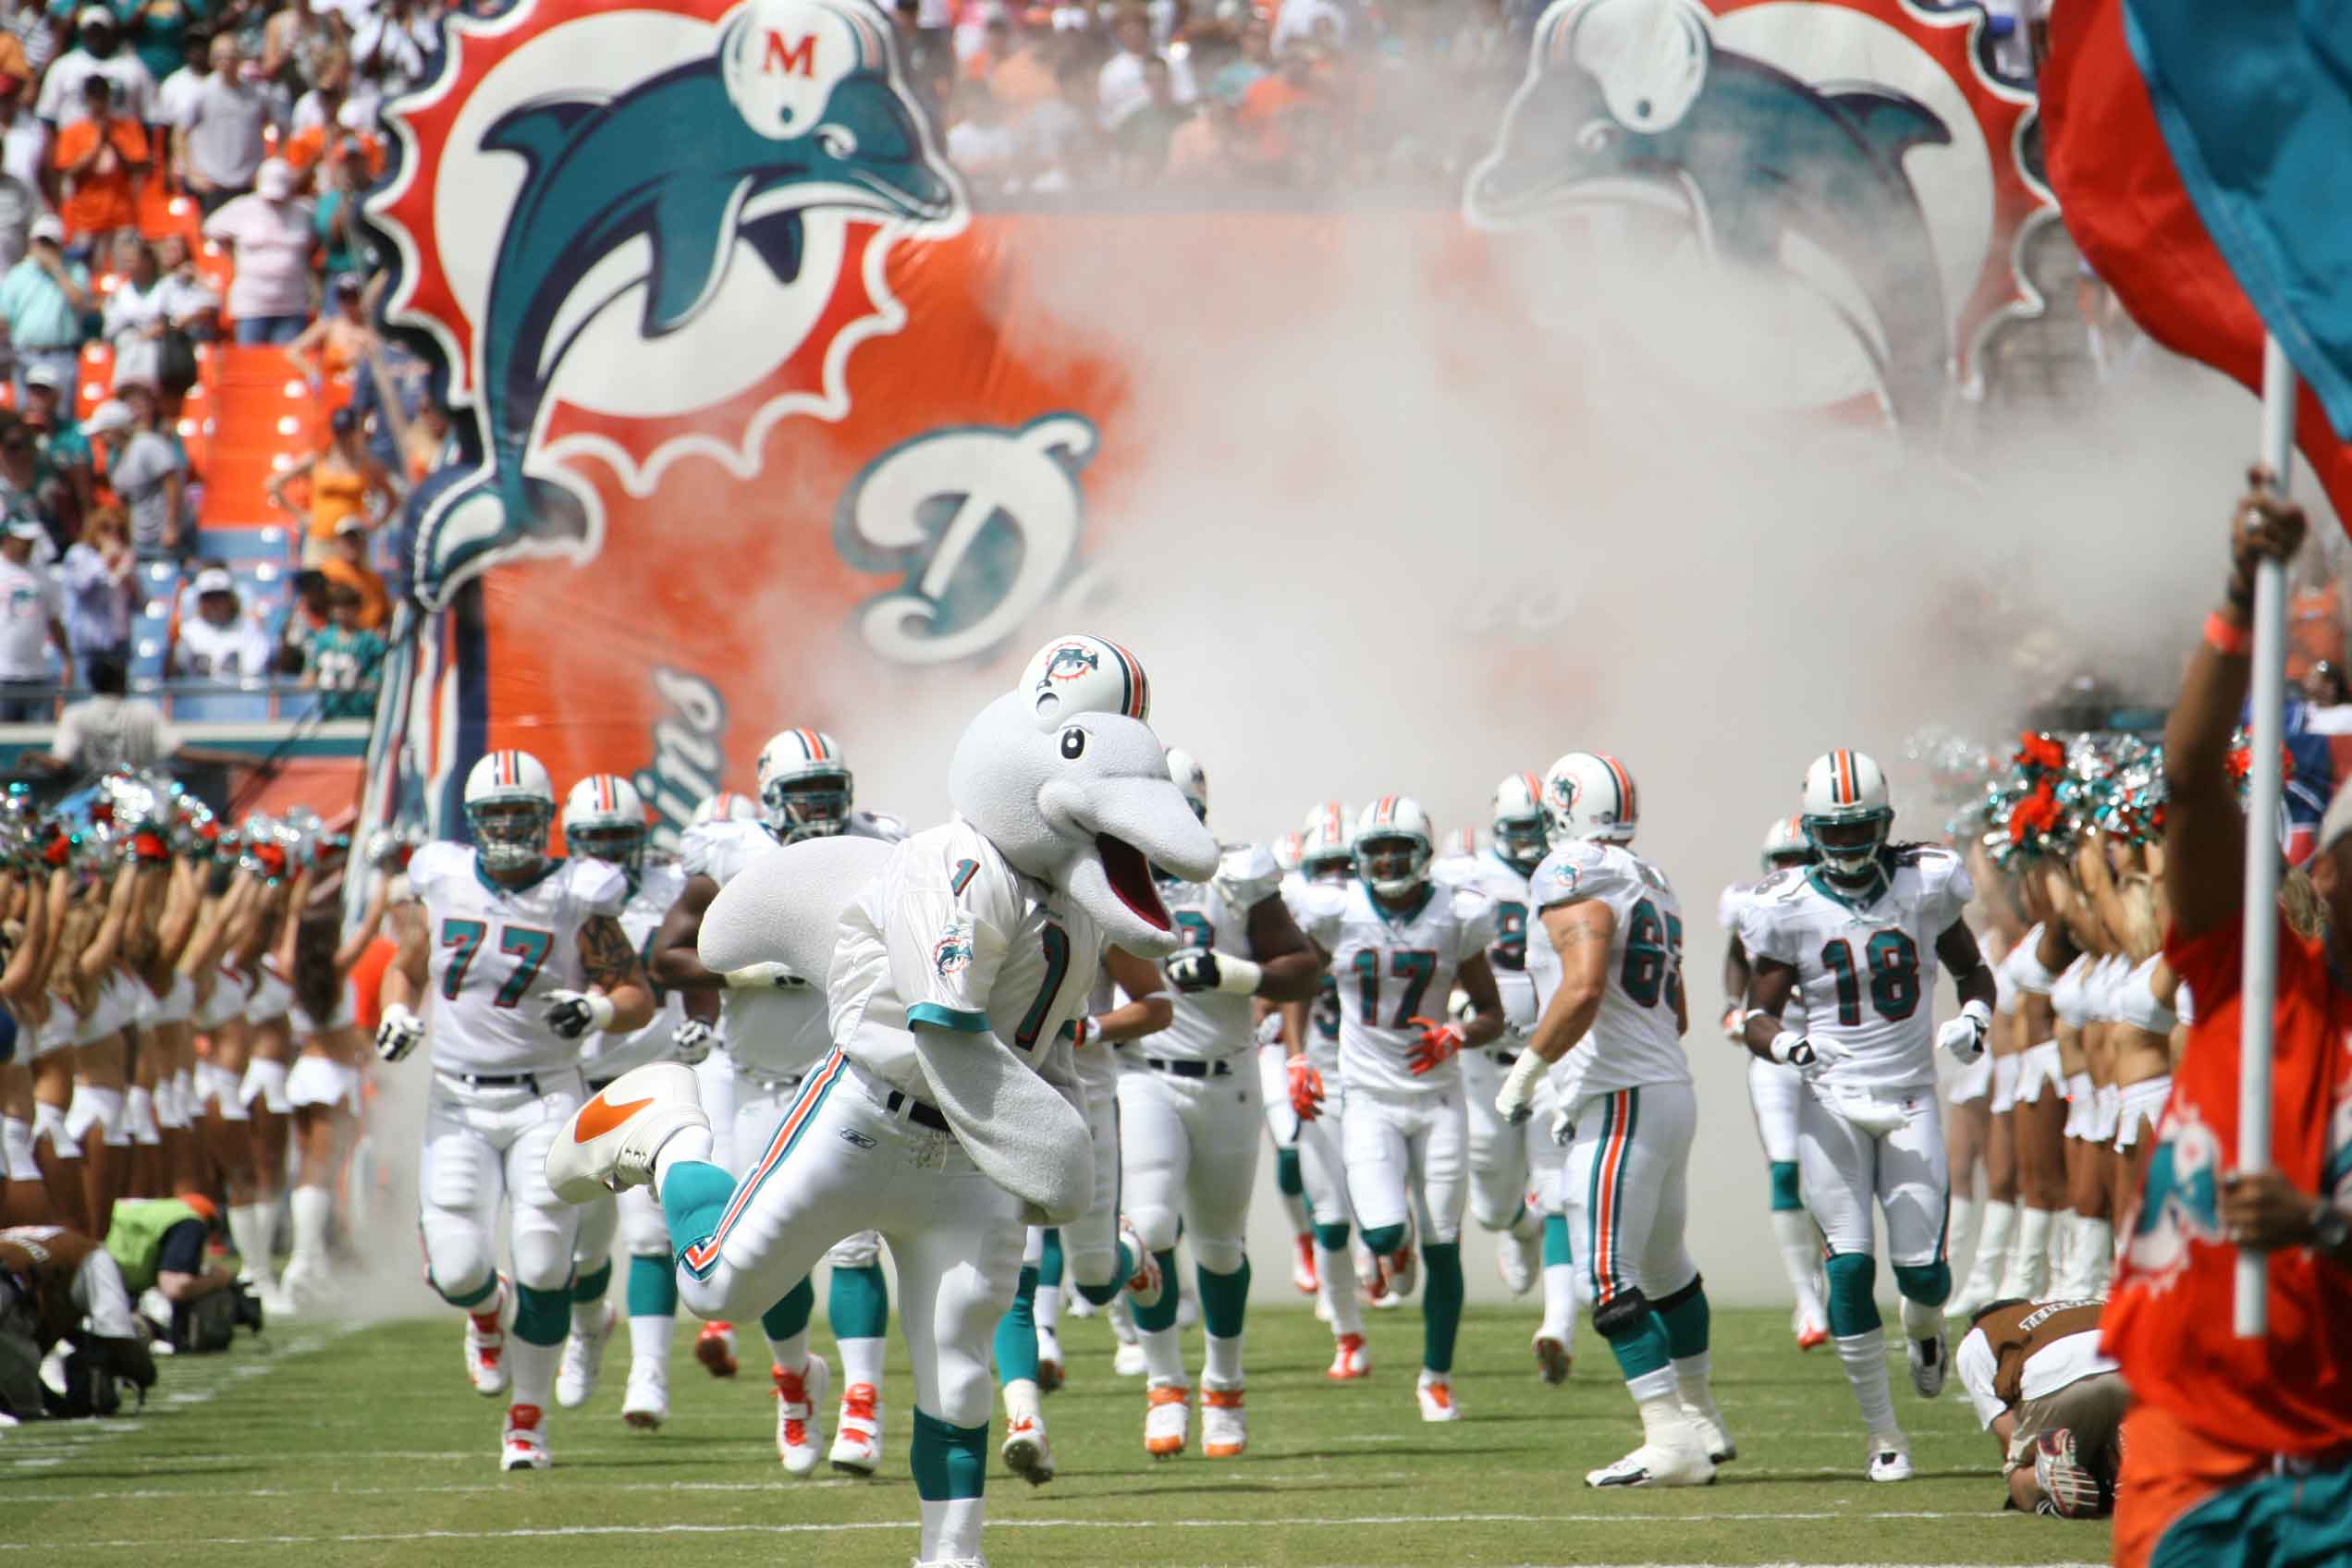 An offseason of struggles got worse for DeVante Parker The Miami Dolphins receiver suffered a broken middle finger The wideout is weektoweek and hopes to be ready